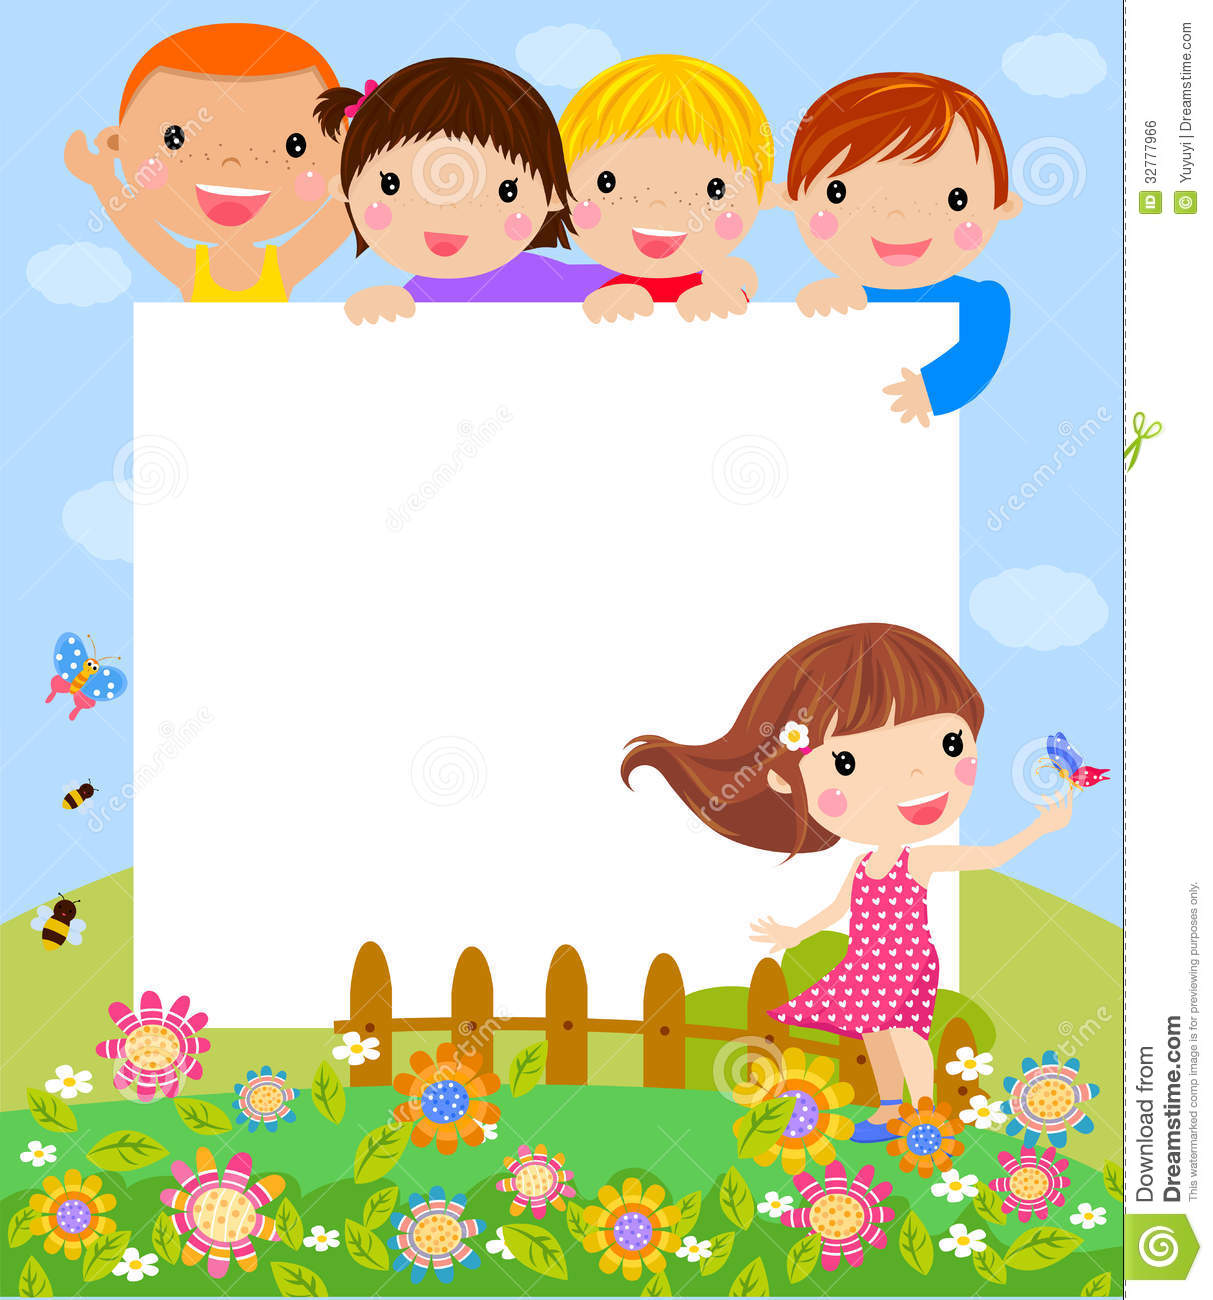 happy kids and frame - Download Free Kids Cartoon